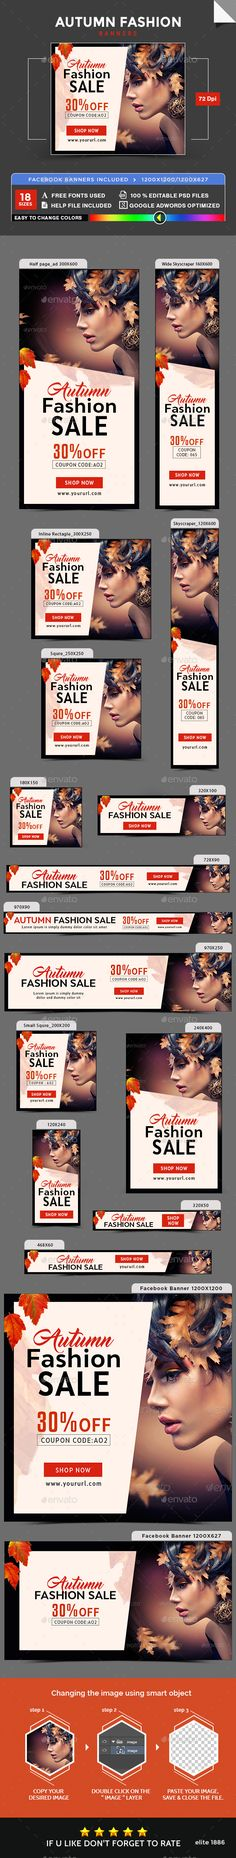 Autumn Fashion Sale Banners  — PSD Template #studio #web banner • Download ➝ https://graphicriver.net/item/autumn-fashion-sale-banners/18285788?ref=pxcr